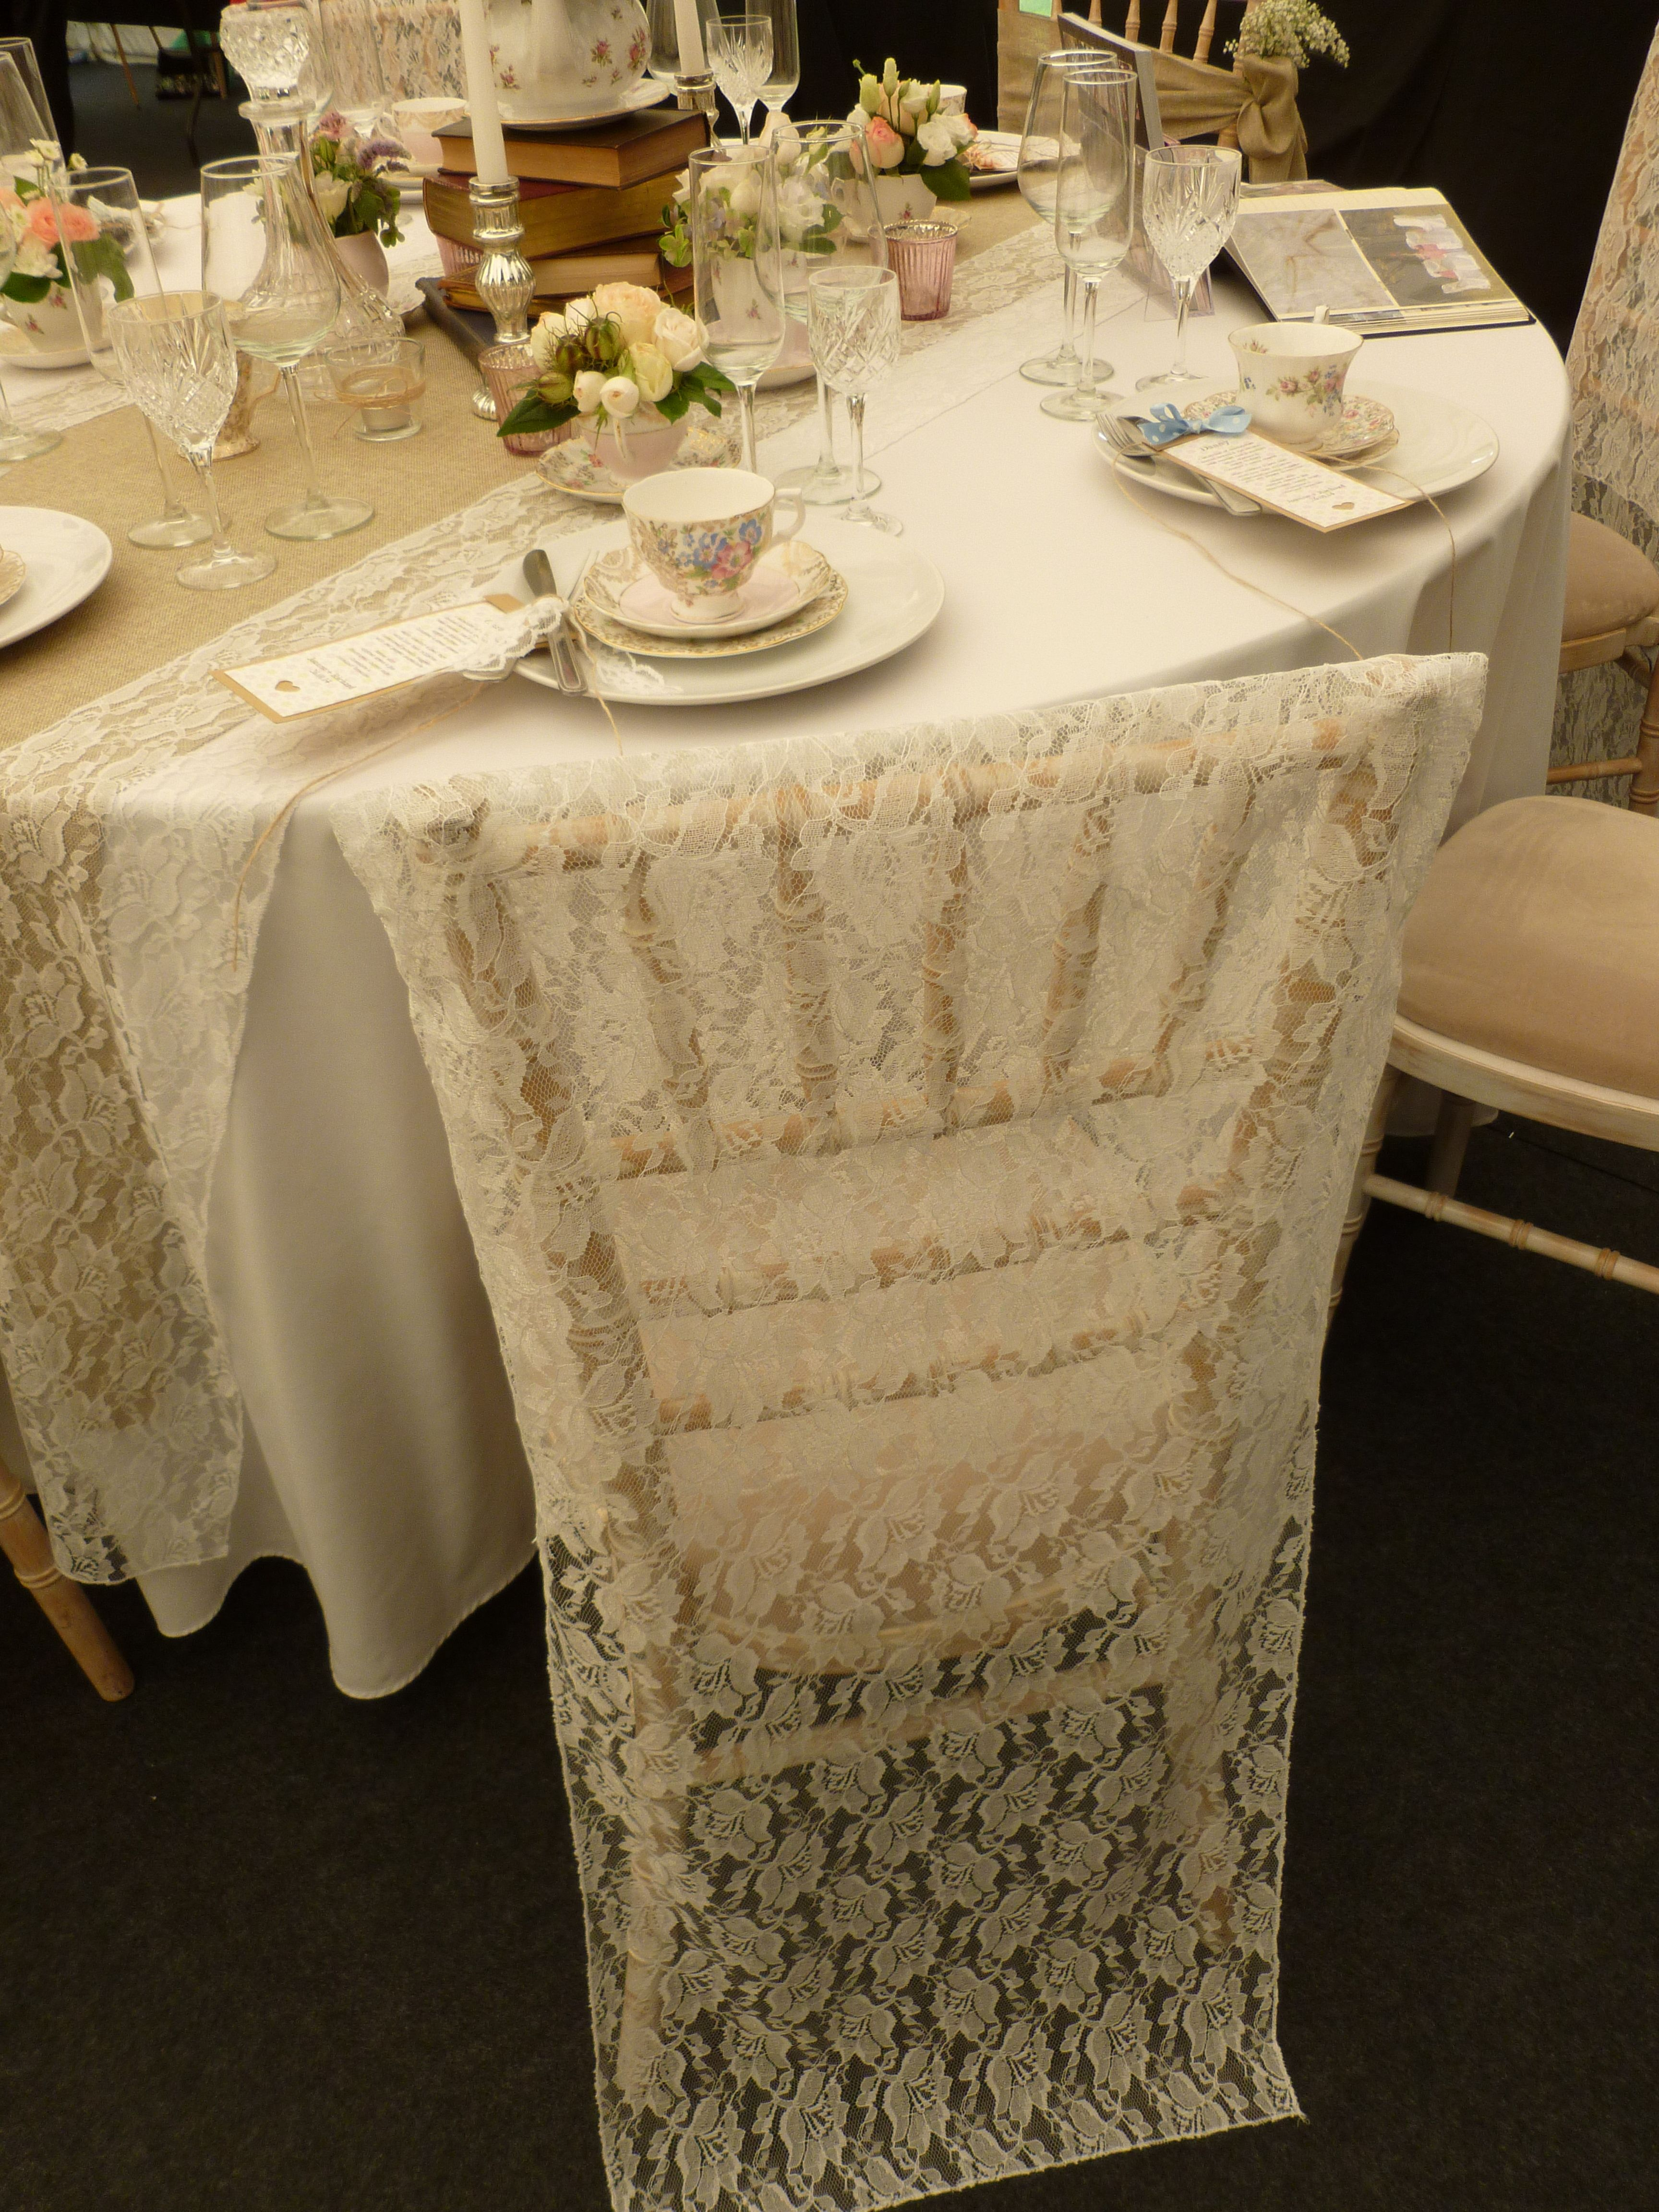 chair covers for hire south wales recliner beautiful lace veil designed by simply bows and available weddings events chaircovers